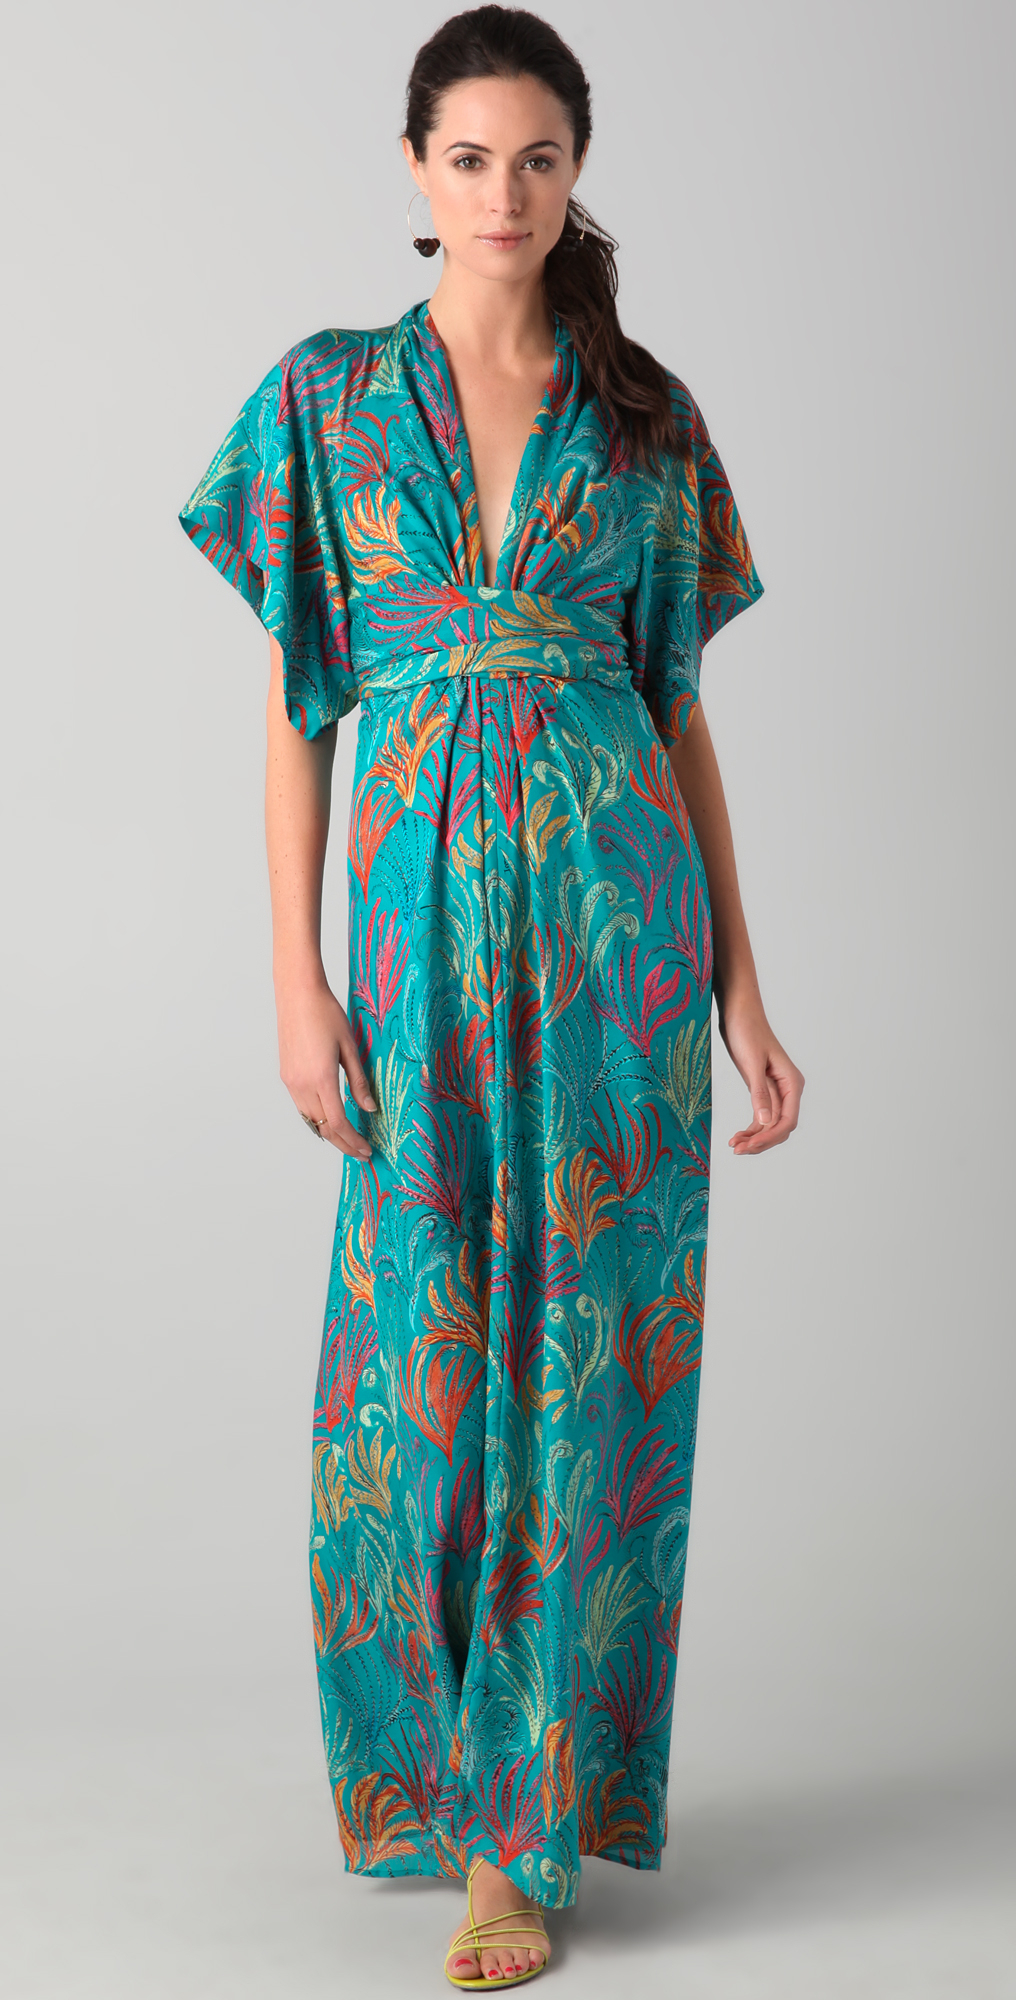 You searched for: kimono dress! Etsy is the home to thousands of handmade, vintage, and one-of-a-kind products and gifts related to your search. No matter what you're looking for or where you are in the world, our global marketplace of sellers can help you find unique and affordable options. Let's get started!